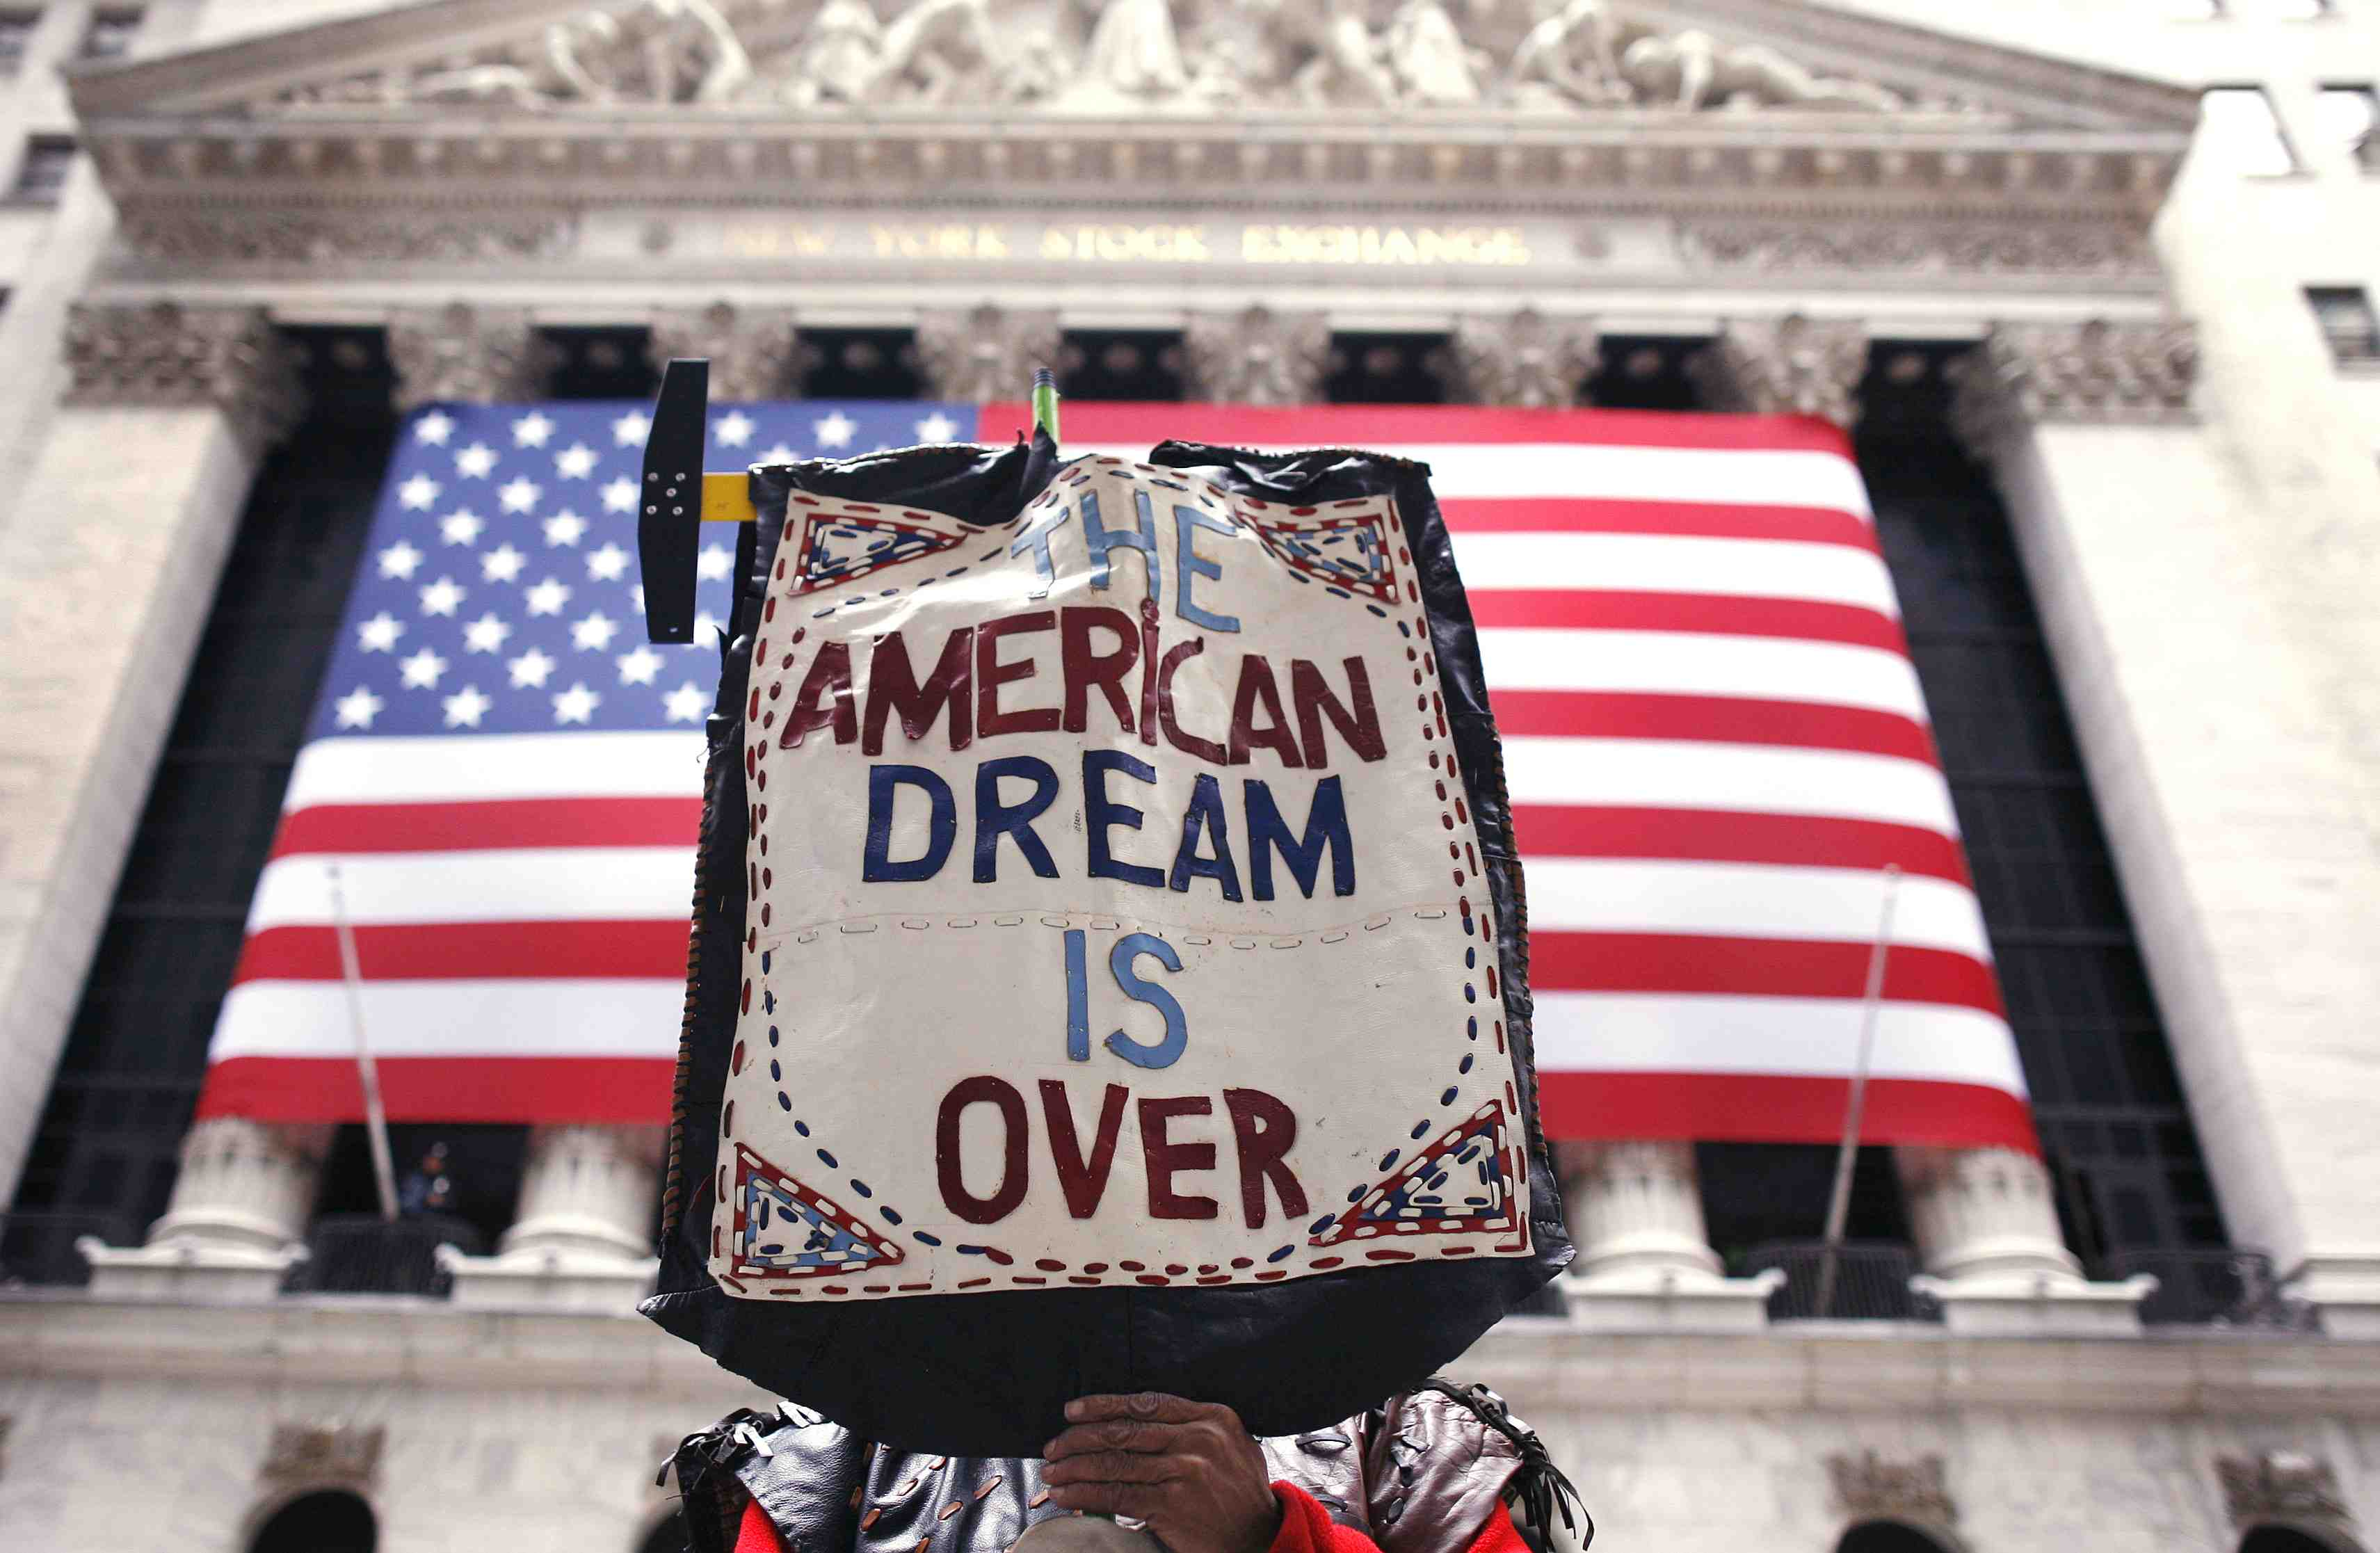 a look at the two sides of the argument on the abstract concept of the american dream The editors of forbes called on these writers: james q wilson, katherine newman, robert reich, gertrude himmelfarb, natwar m gandhi there are many positive effects that the american dream has such immigrant origins, to the united states advertising must be two sides of the argument.